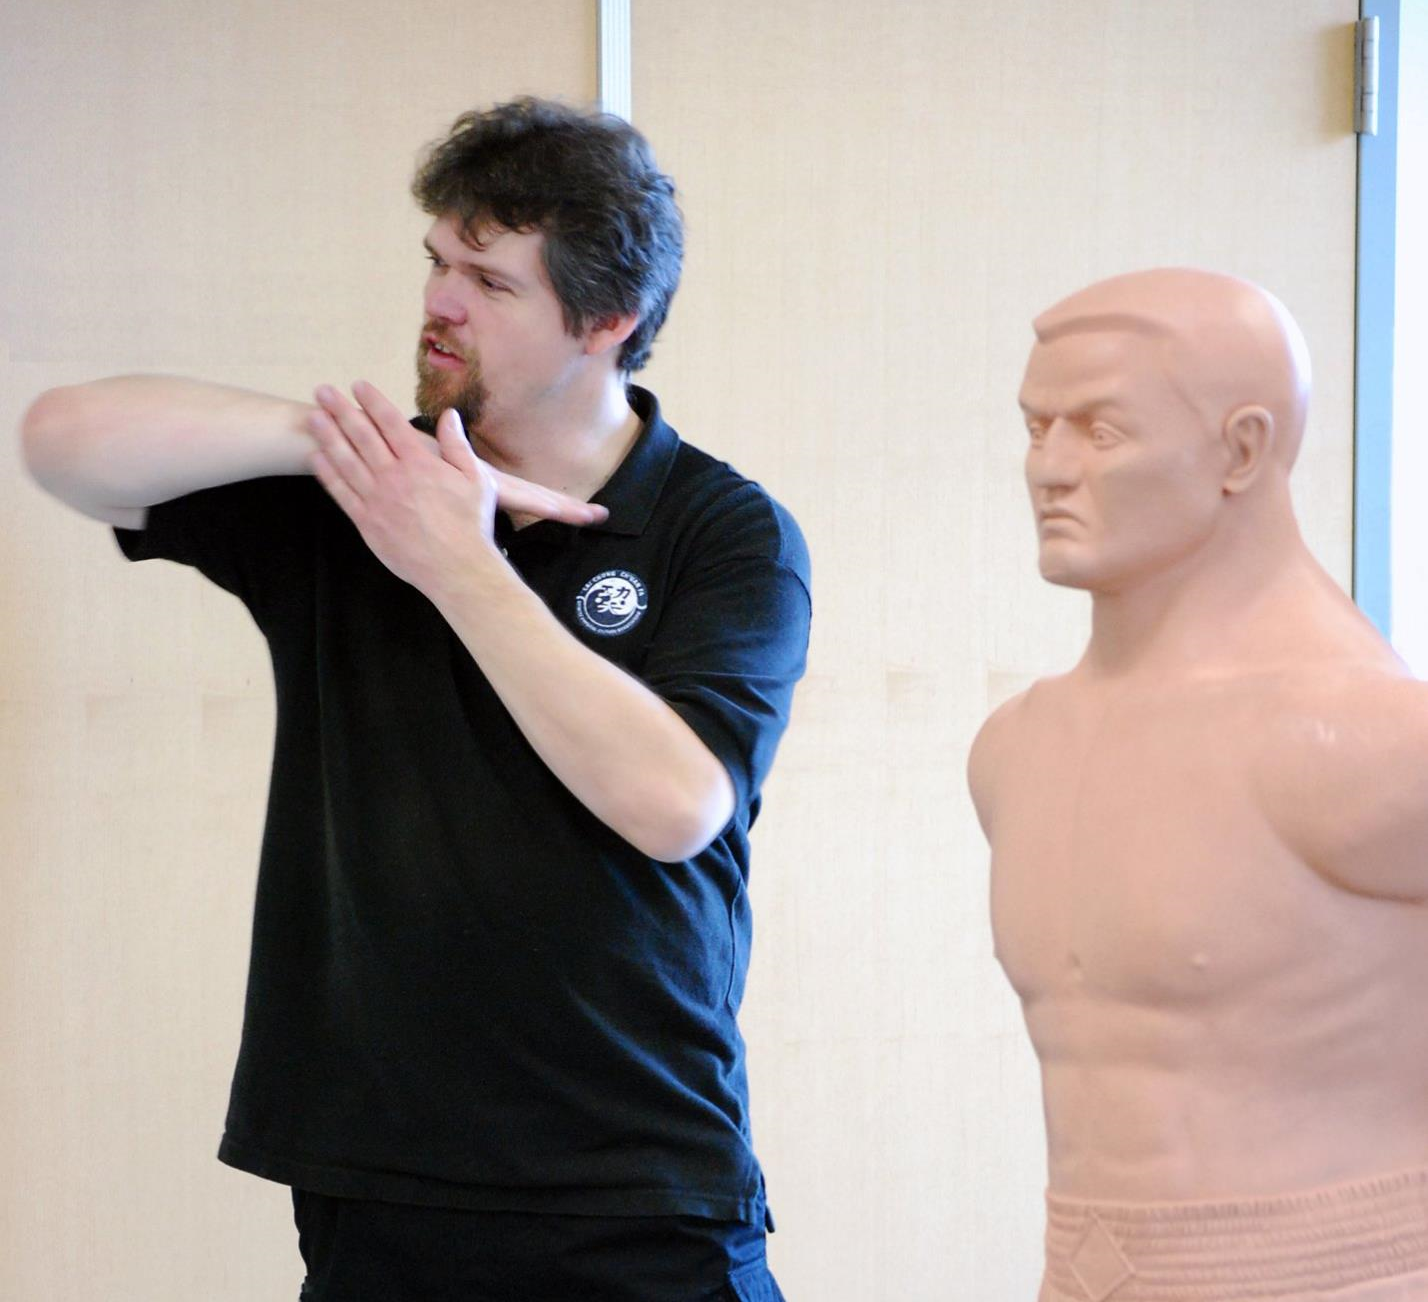 Sifu Jason demonstrating an inward elbow strike.  He always enjoyed showing some of the particularly effective strikes and target areas.